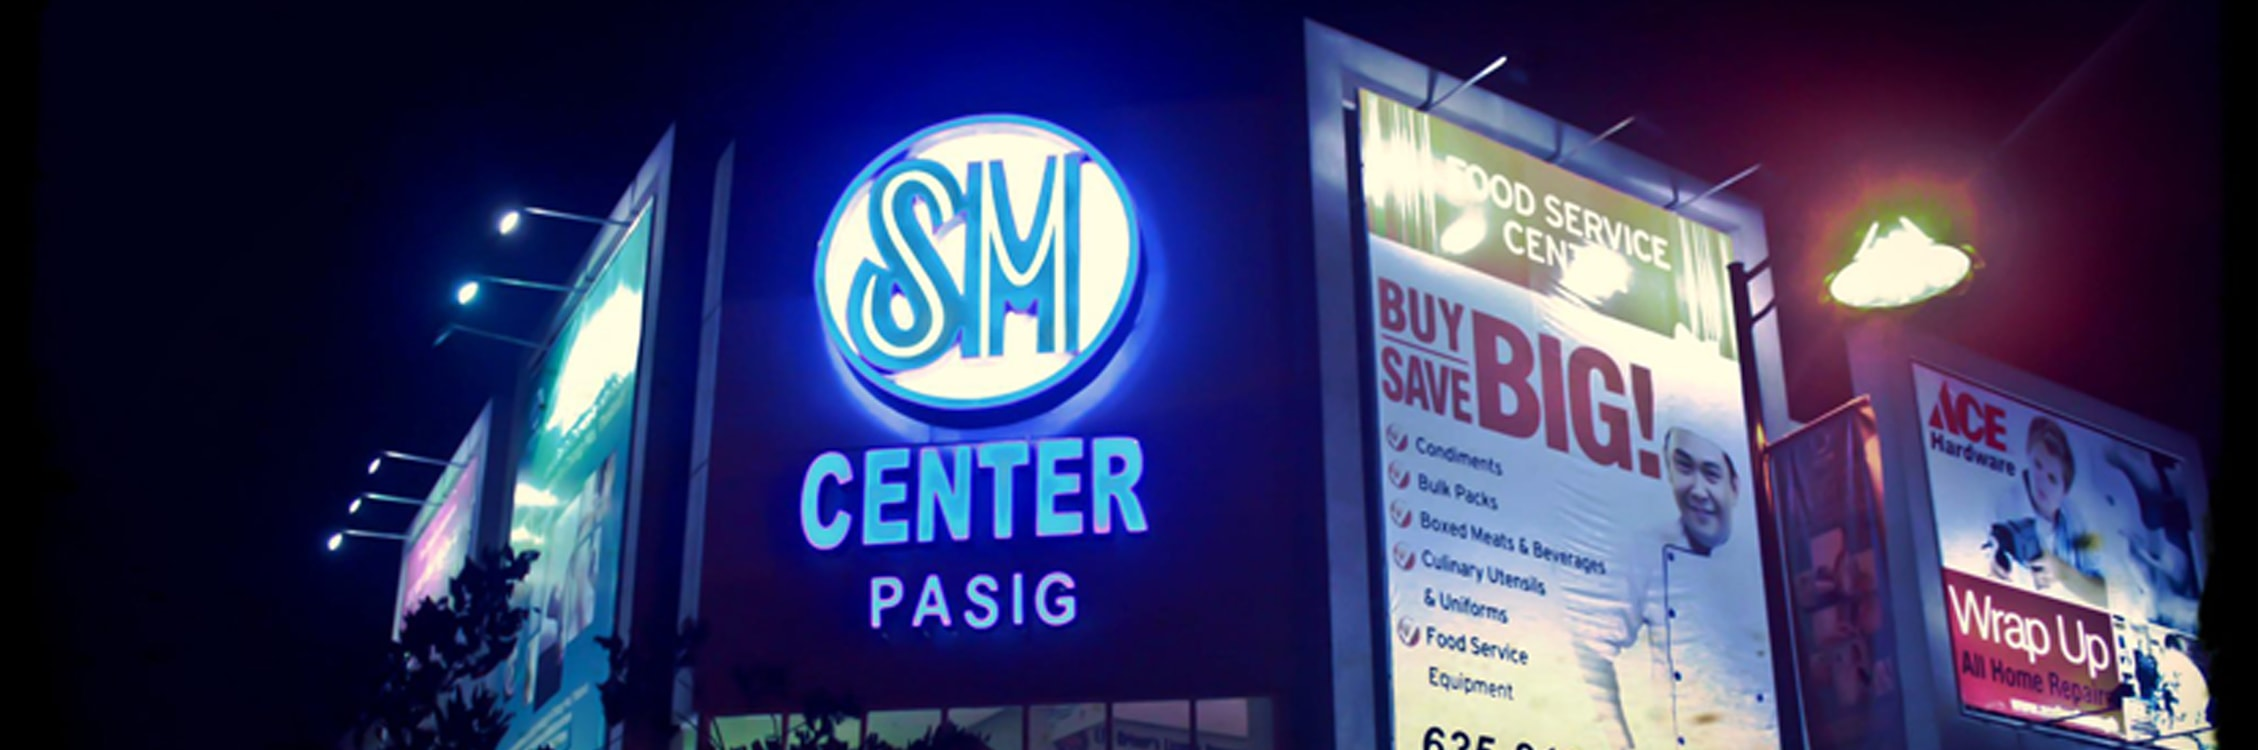 SM Center Pasig